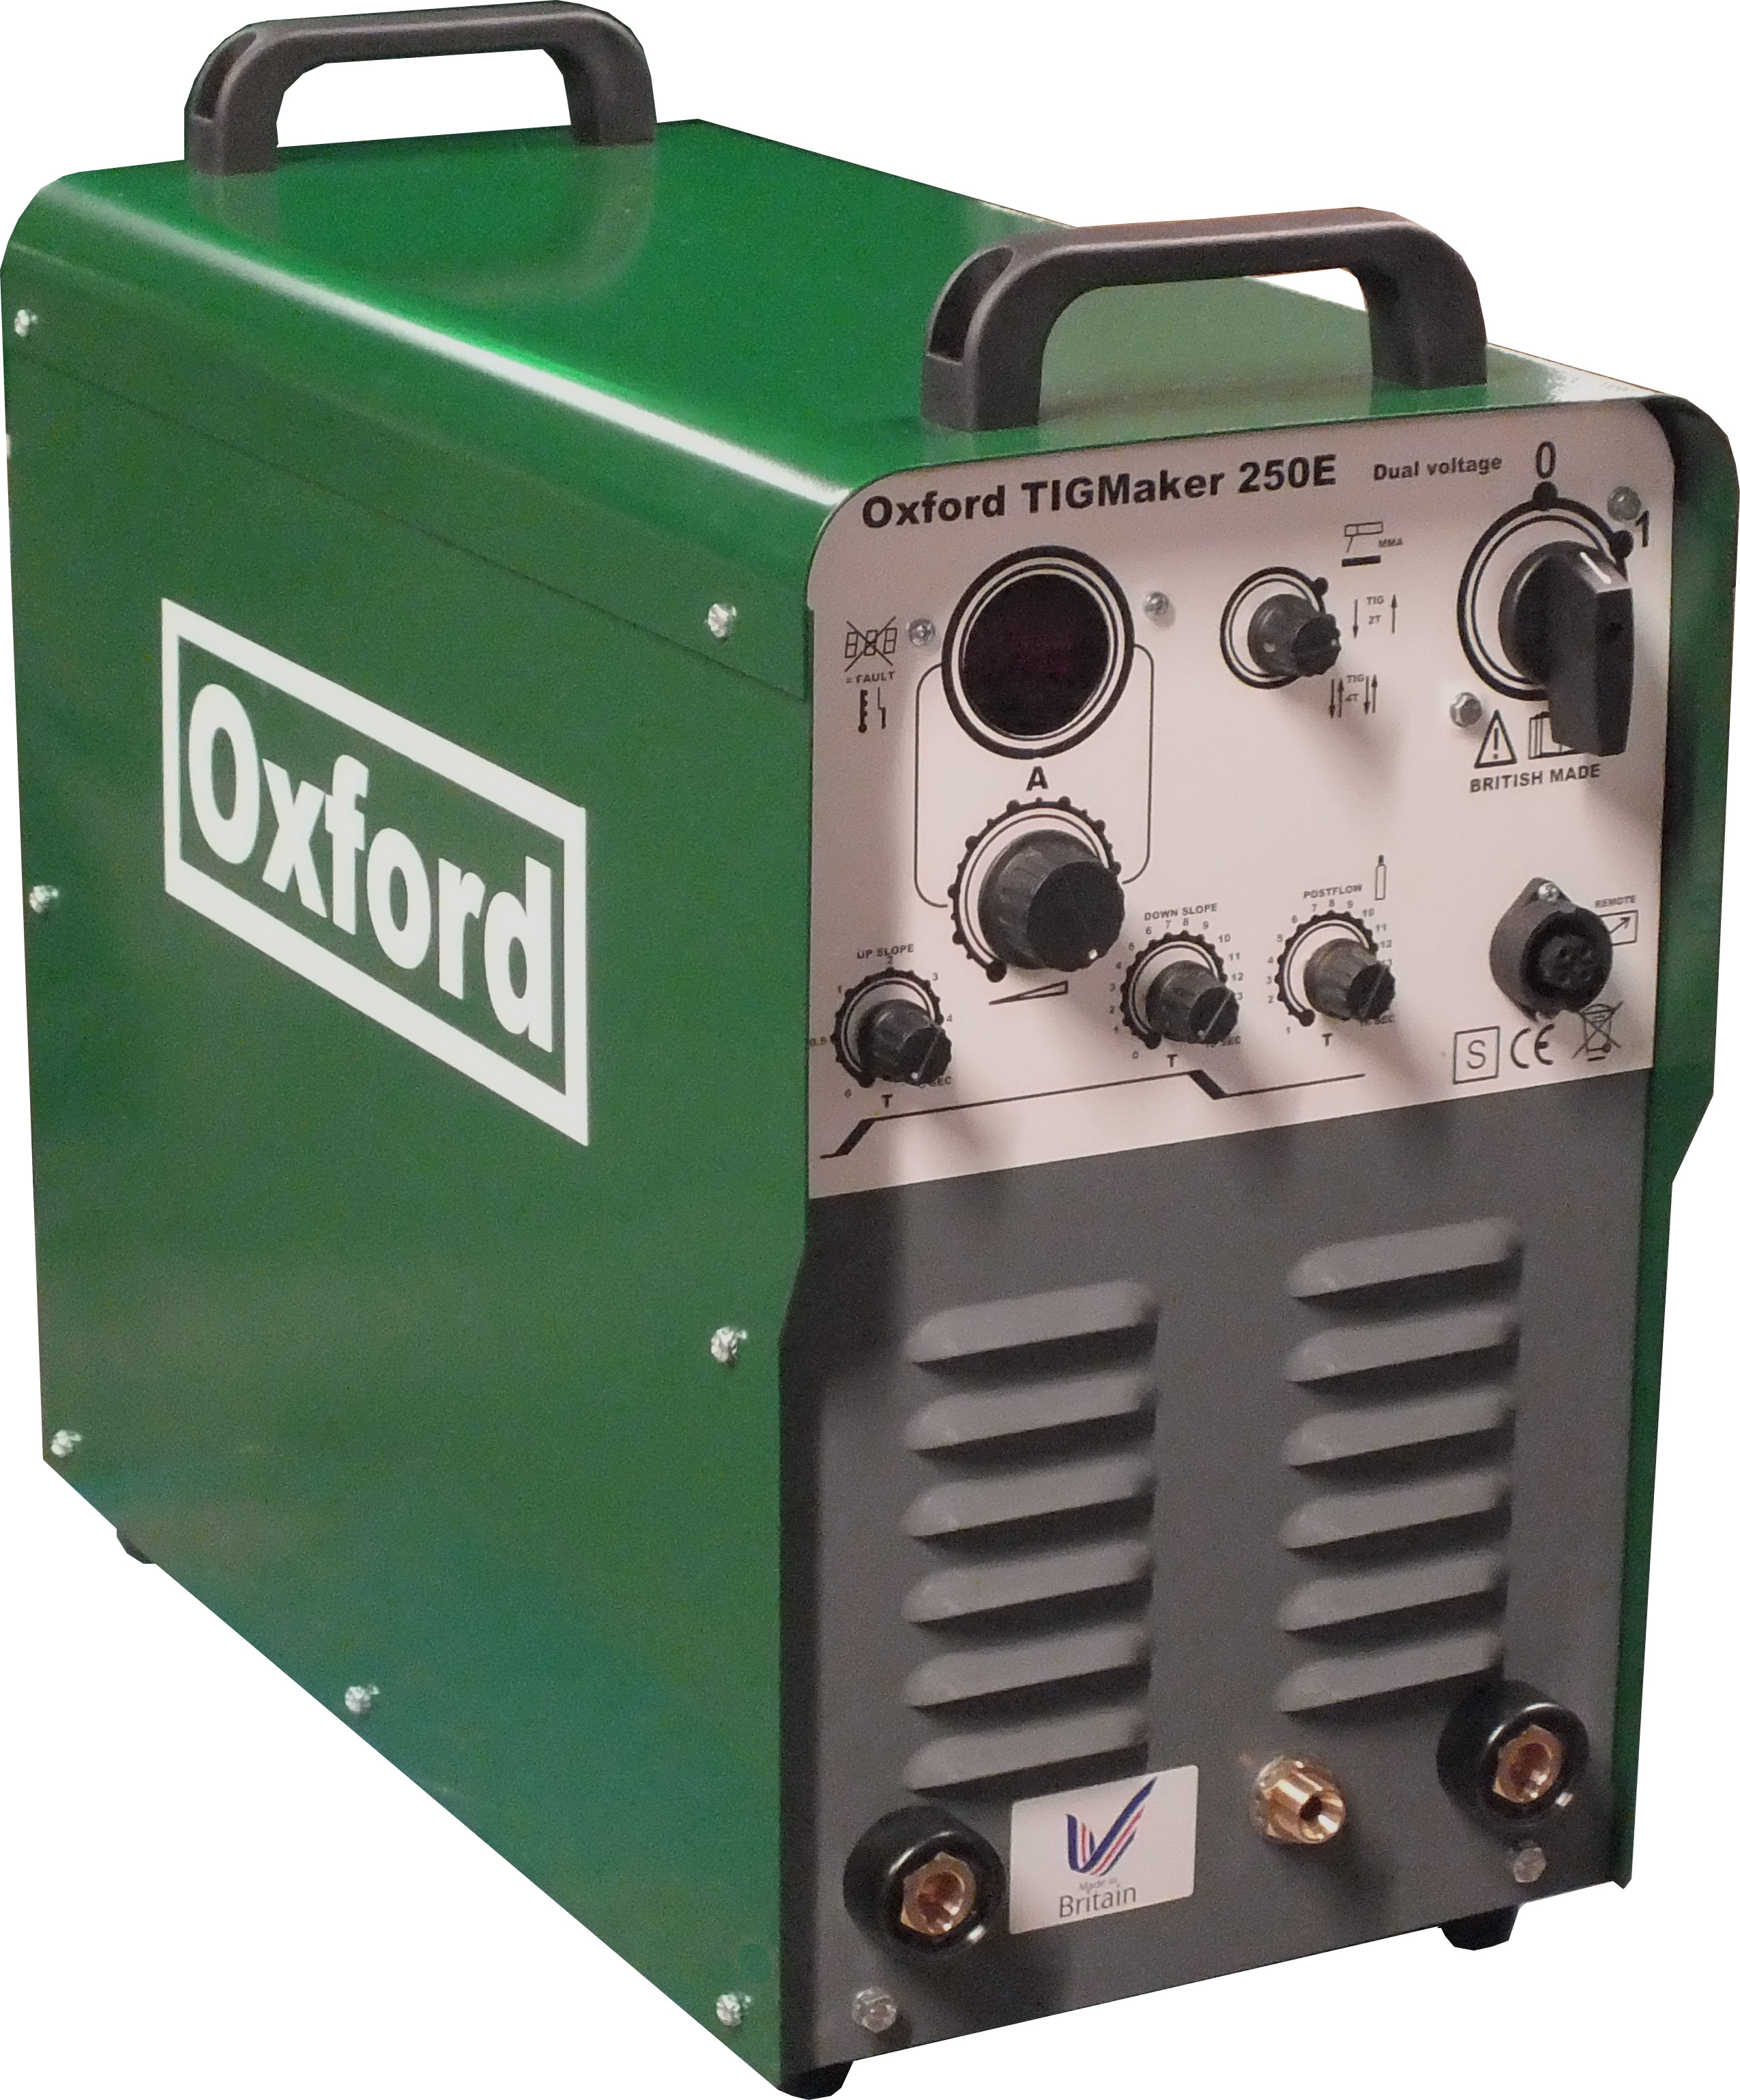 Oxford  TIGMaker 300E dual voltage 400V 3 phase